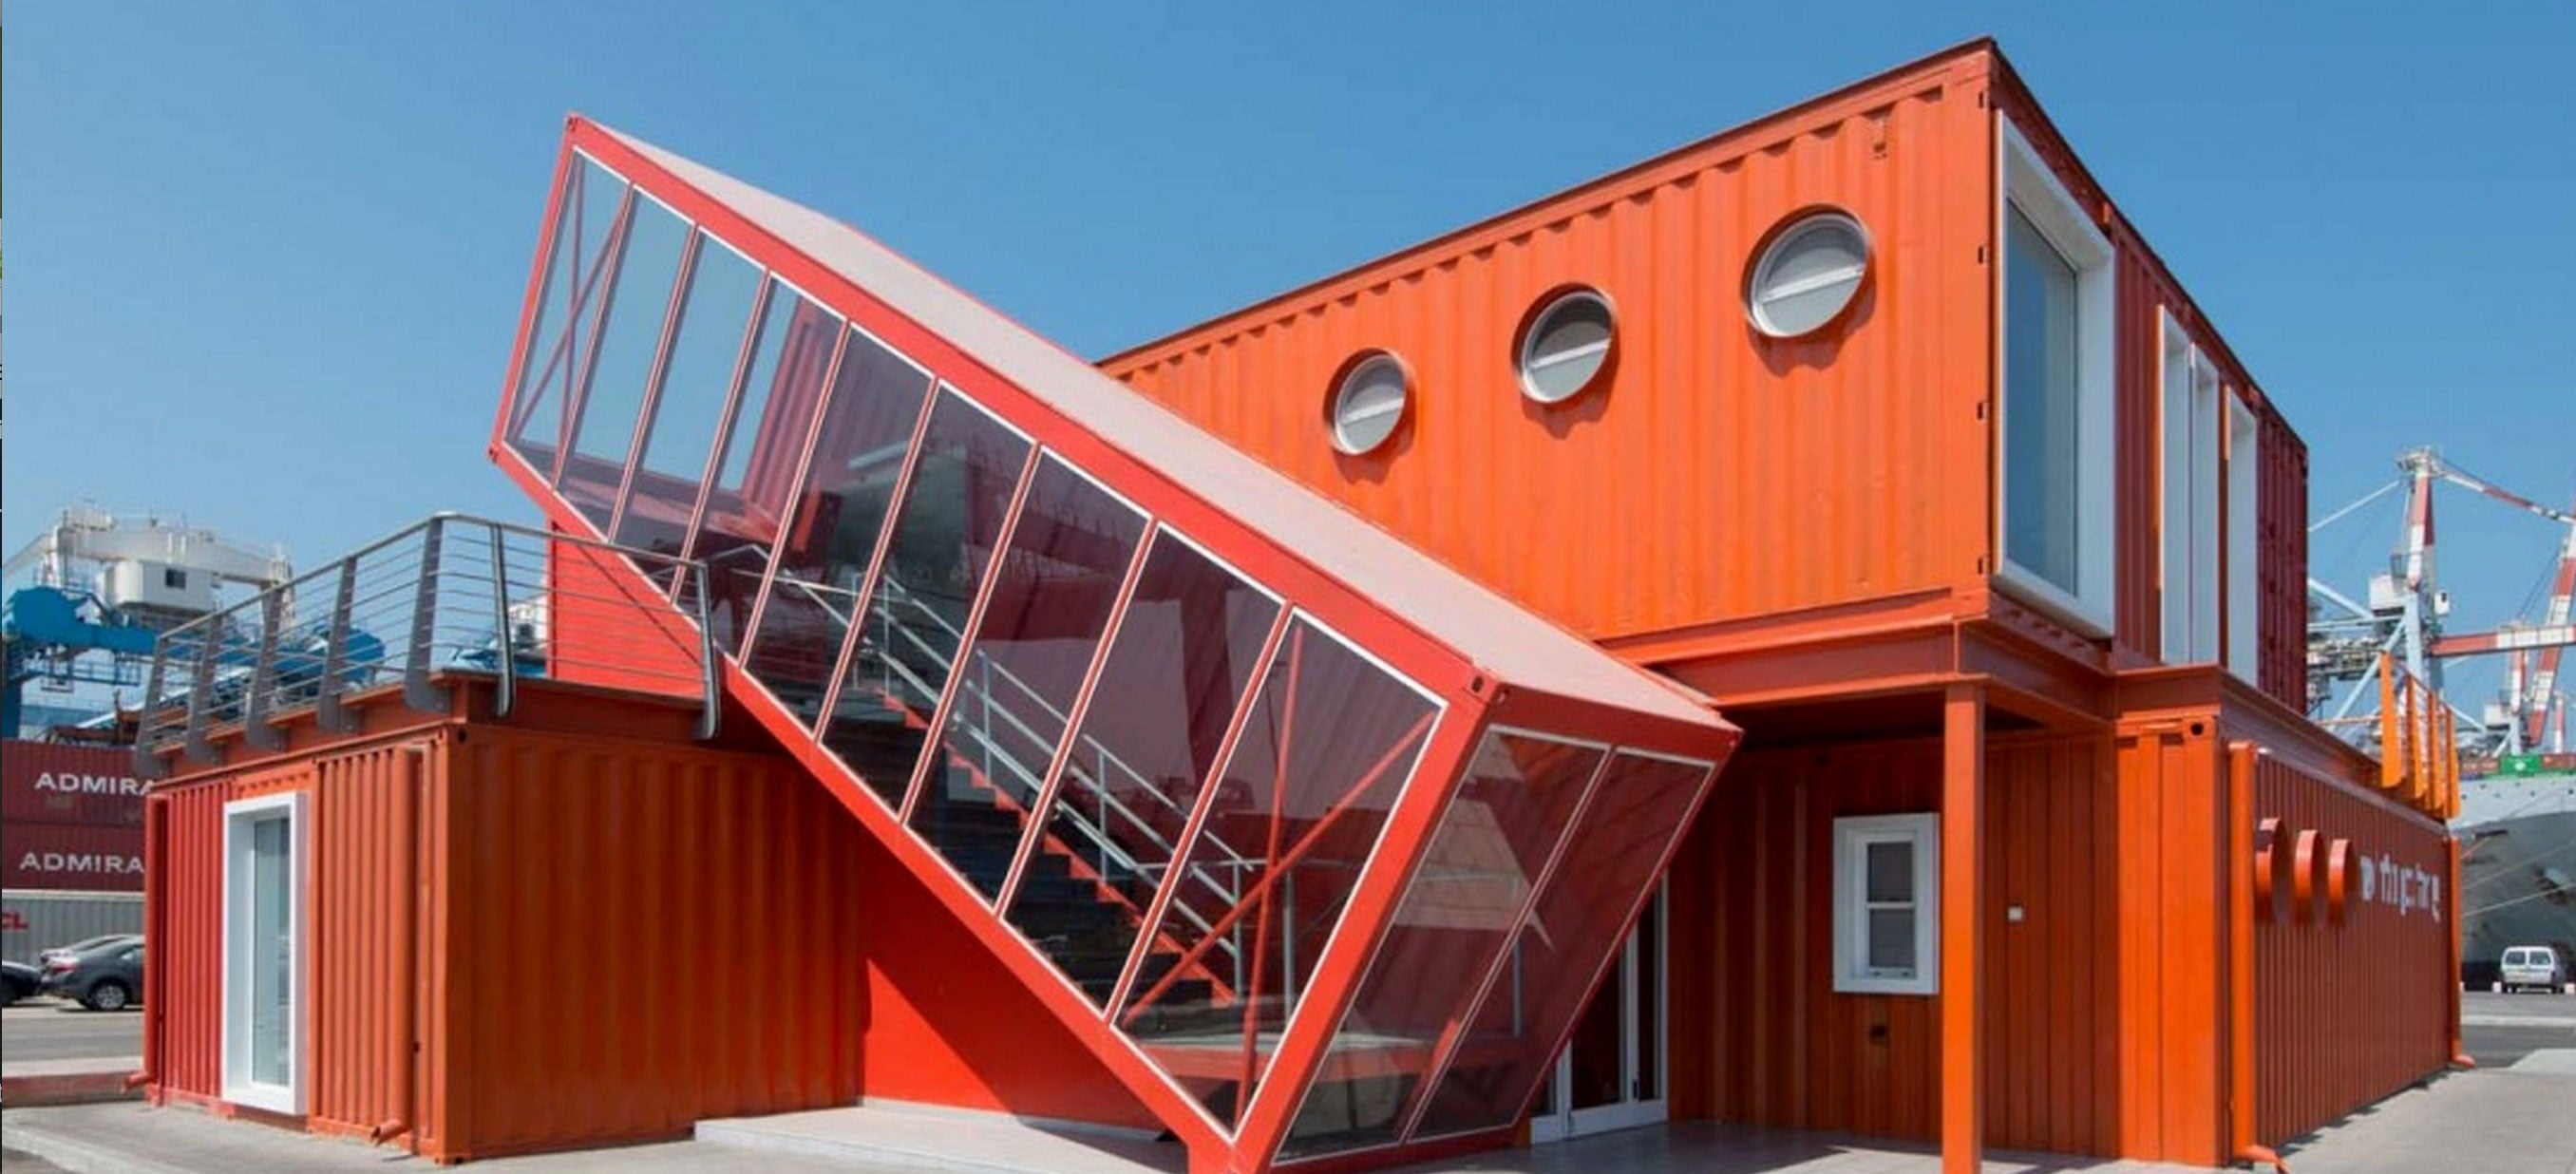 Wonderful Shipping Container Offices Are Right At Home On An Industrial Seafront